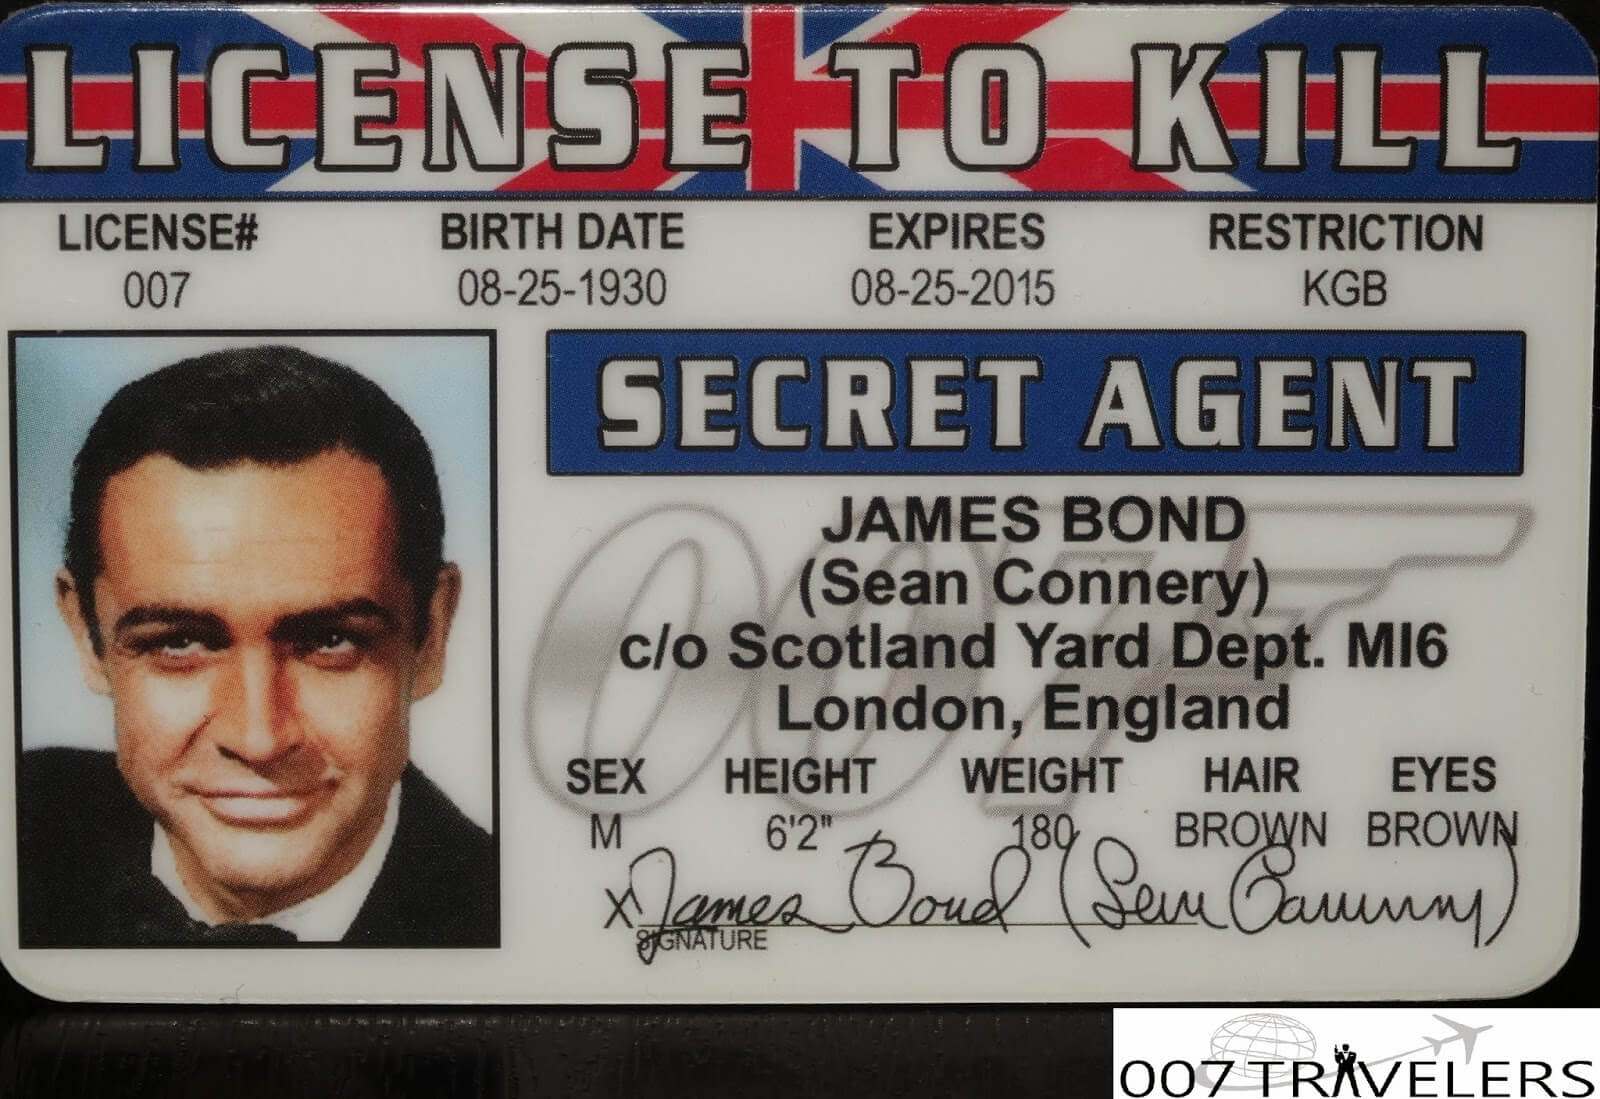 007 Travelers: 007 Item: License To Kill Id Card with Mi6 Id Card Template